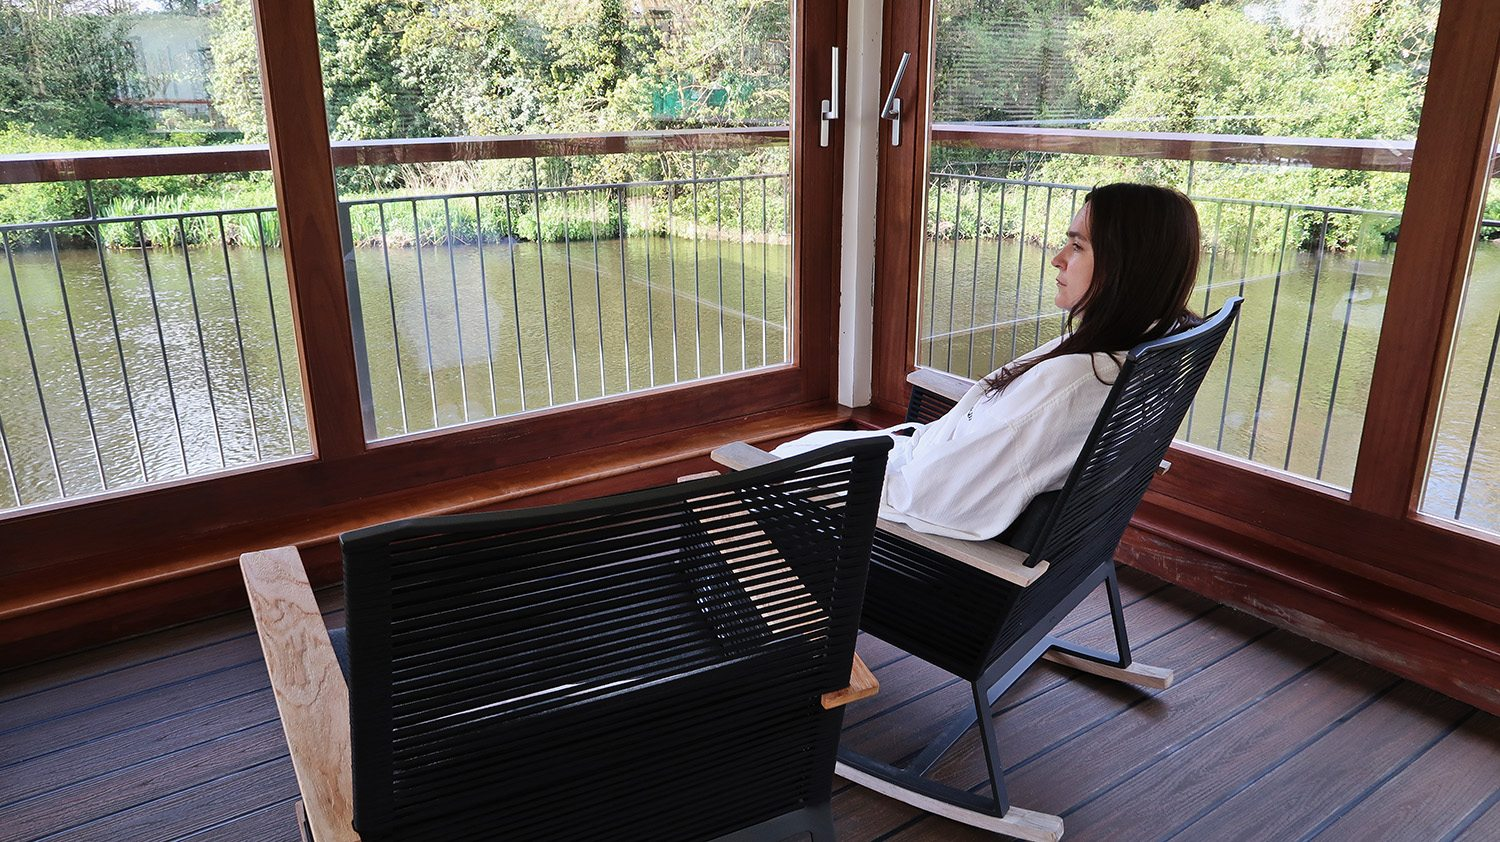 Woman in white spa robe sits in rocking chair looking out at the river through large windows from a meditation room